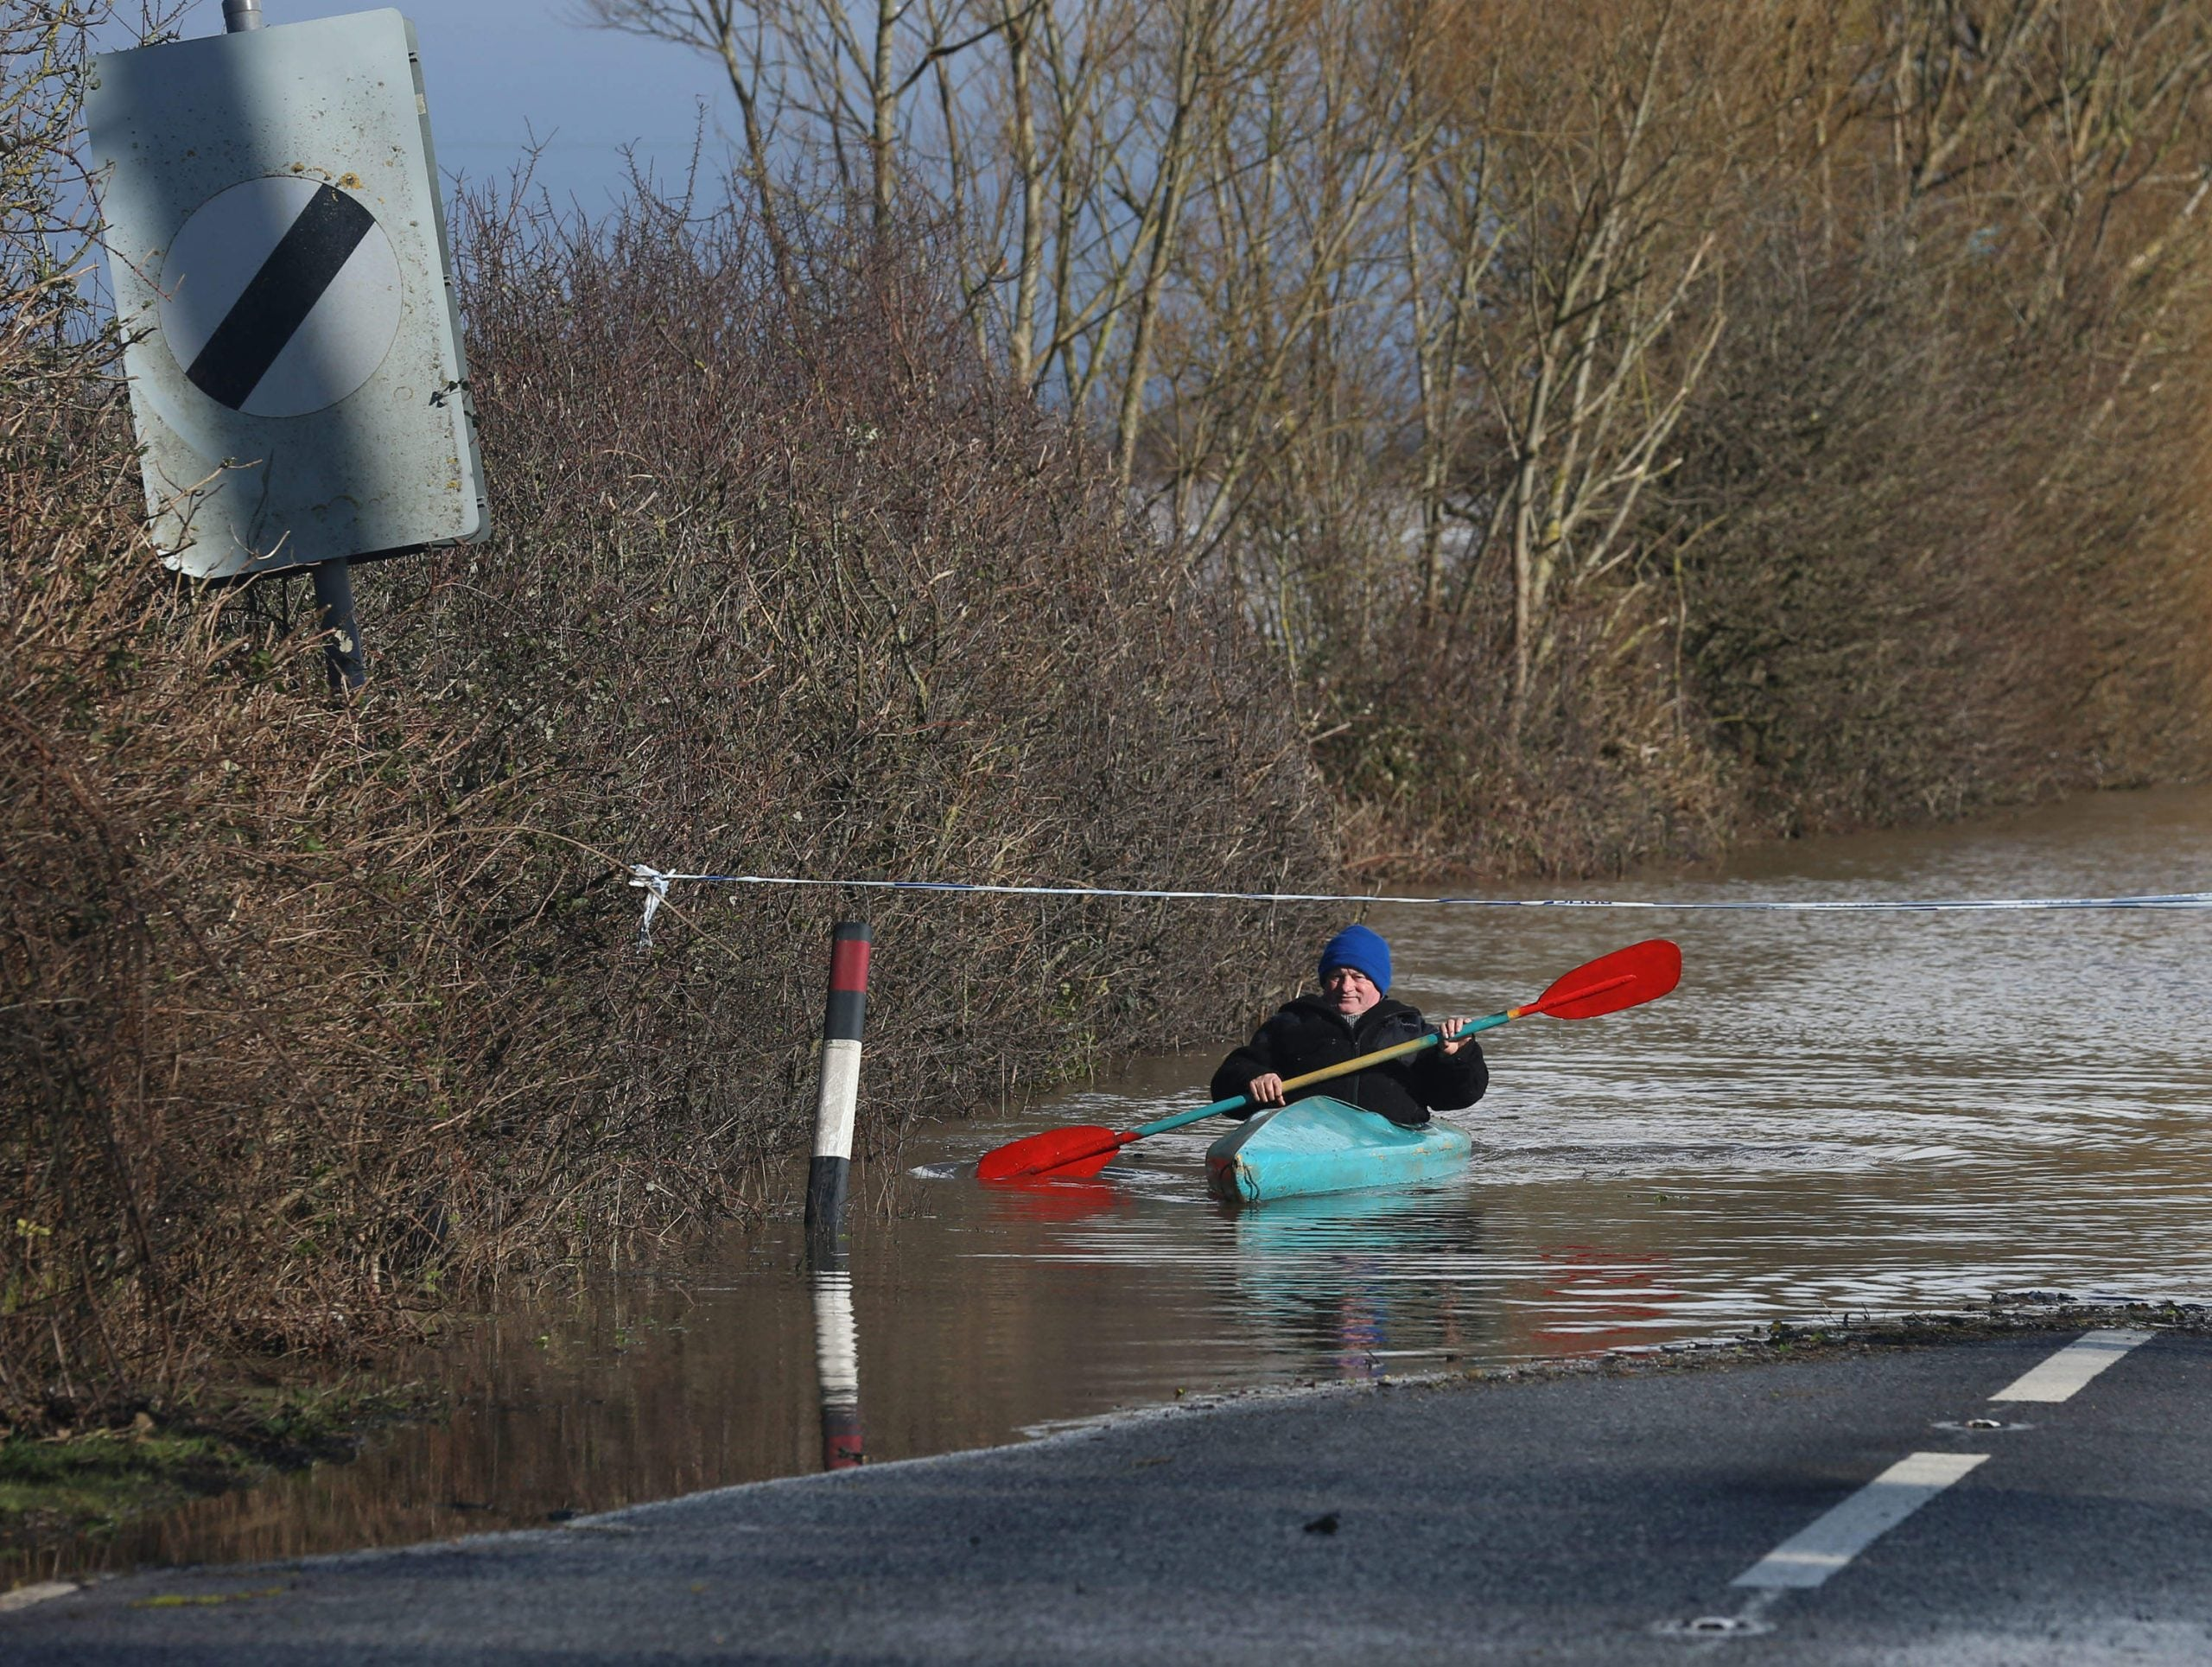 The storm factory: climate change and the winter floods